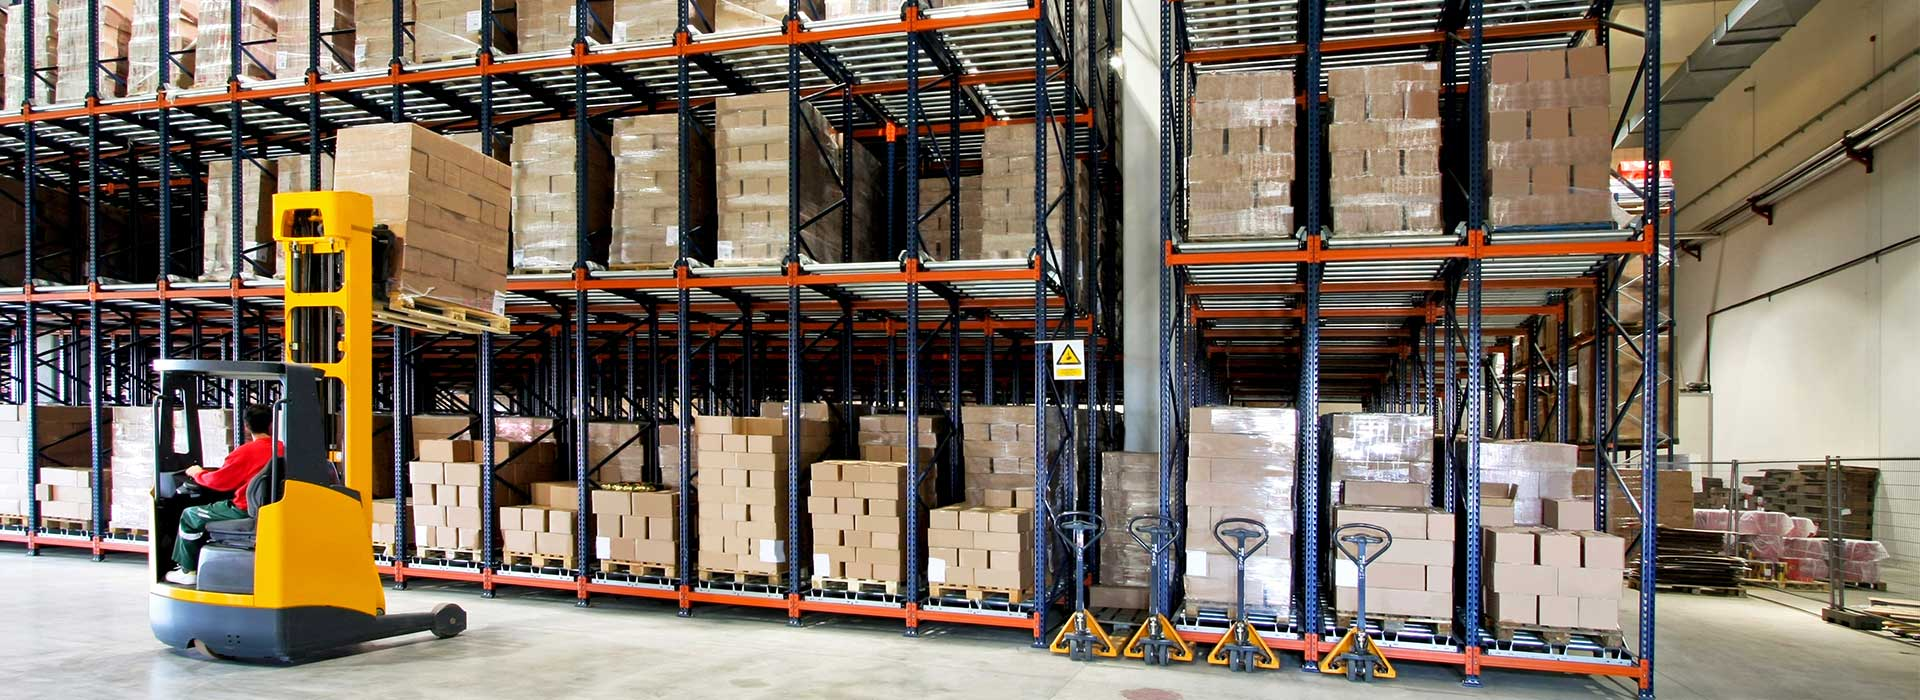 Warehousing & Warehouse - An Explanation